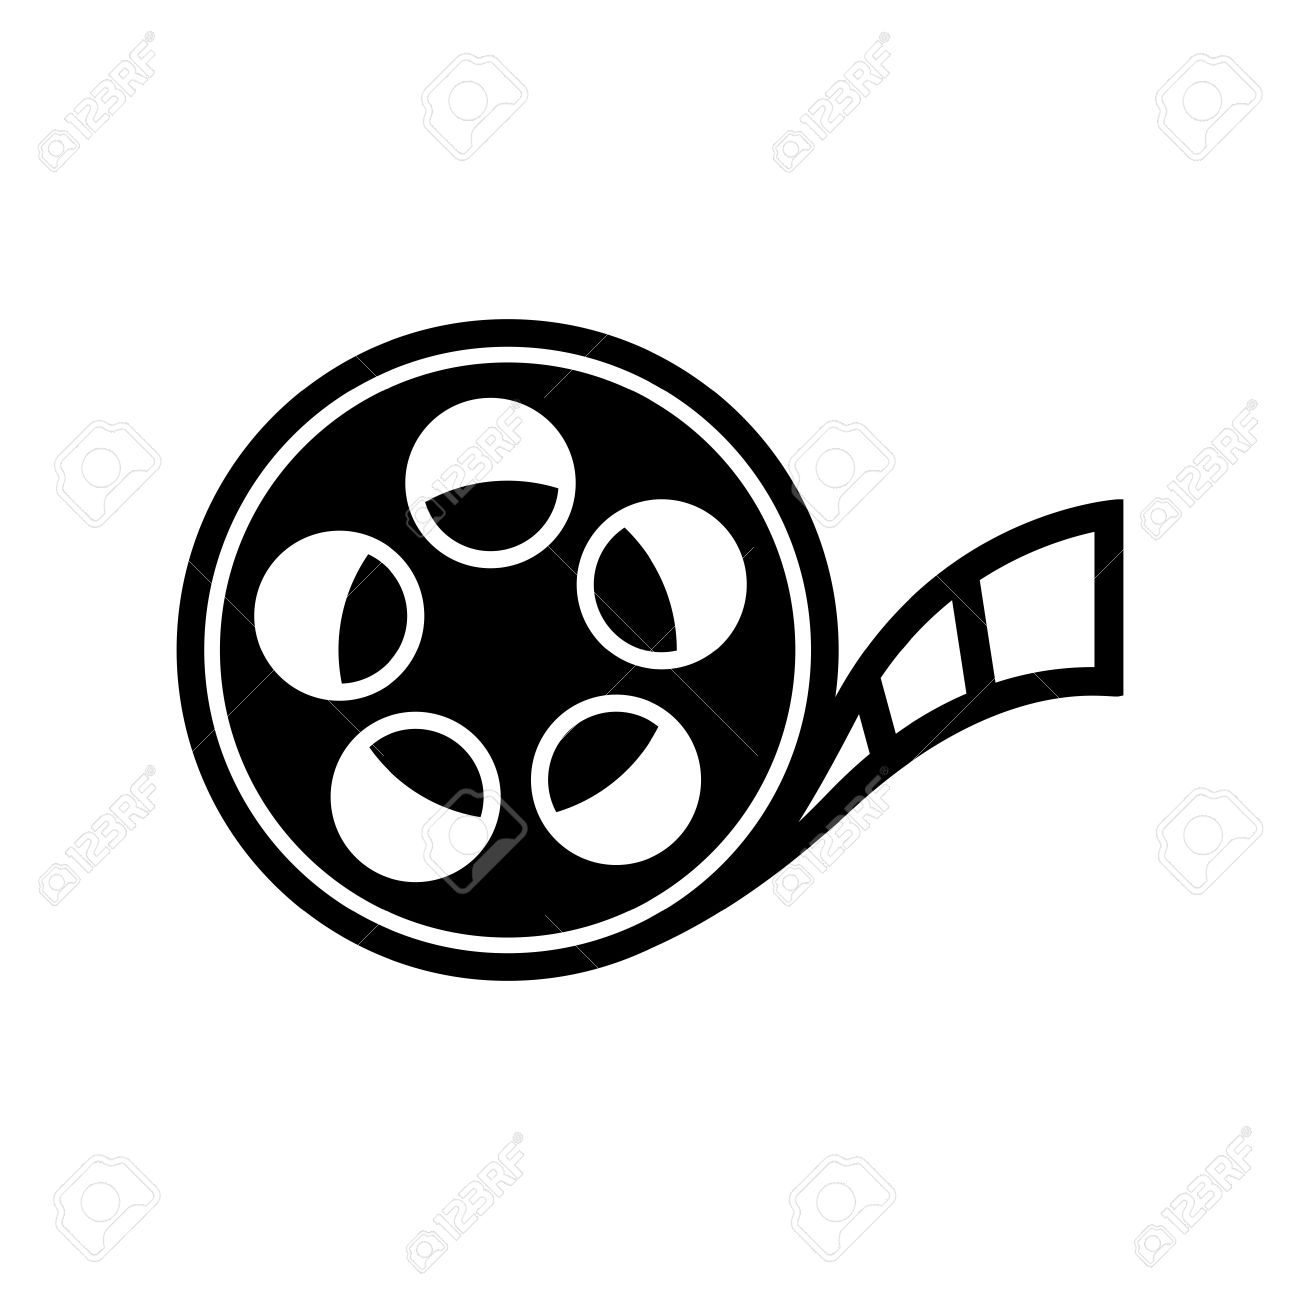 Film reel stock photos royalty free film reel images film reel icon altavistaventures